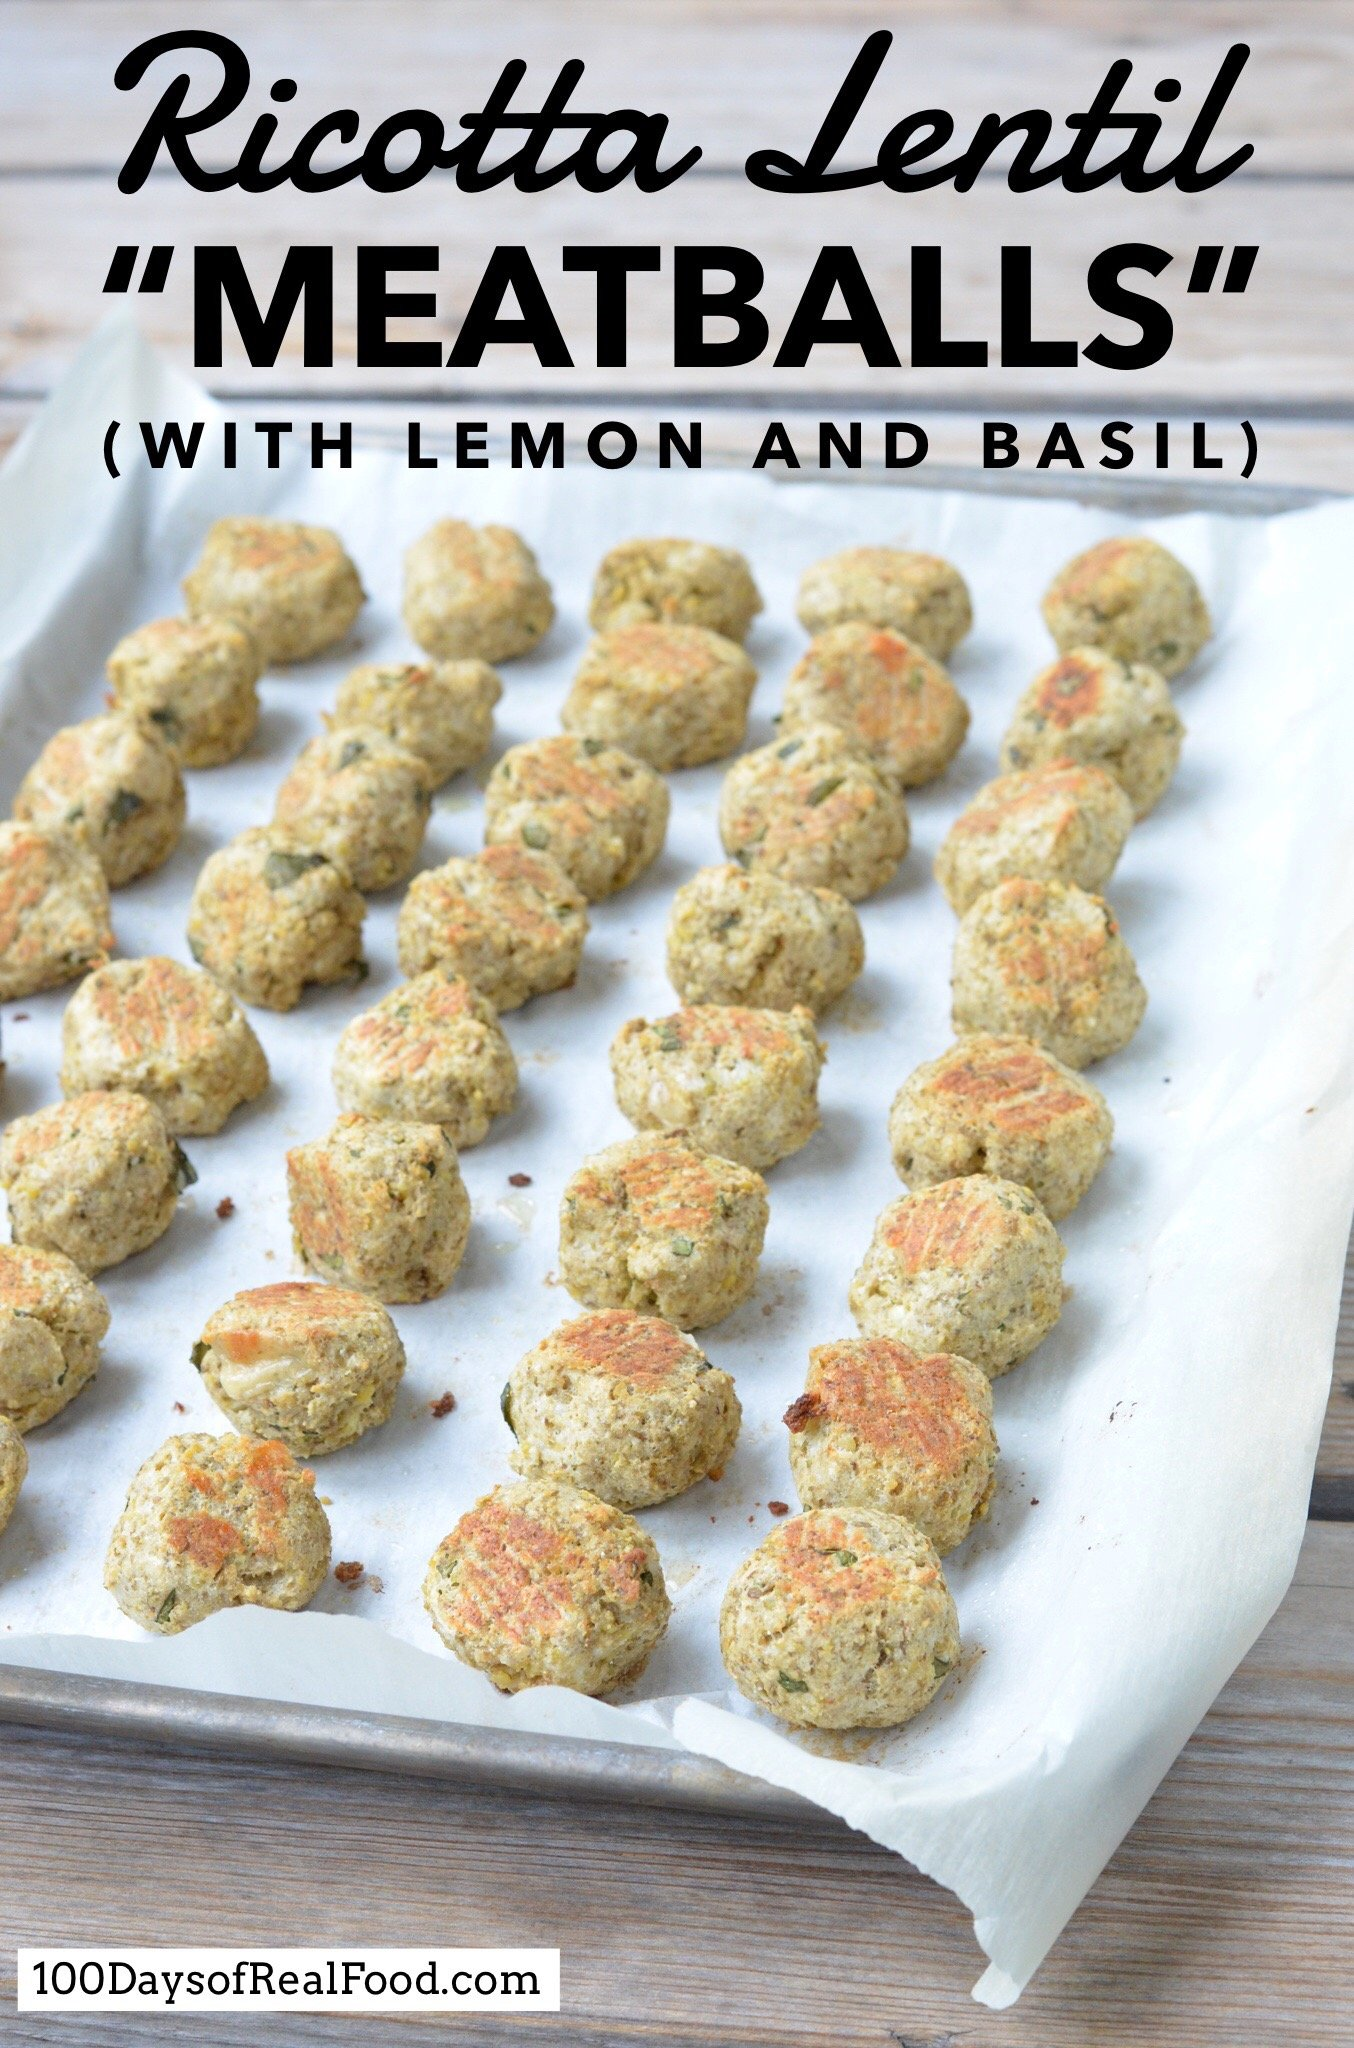 Ricotta Lentil Meatballs with Lemon and Basil on 100 Days of Real Food